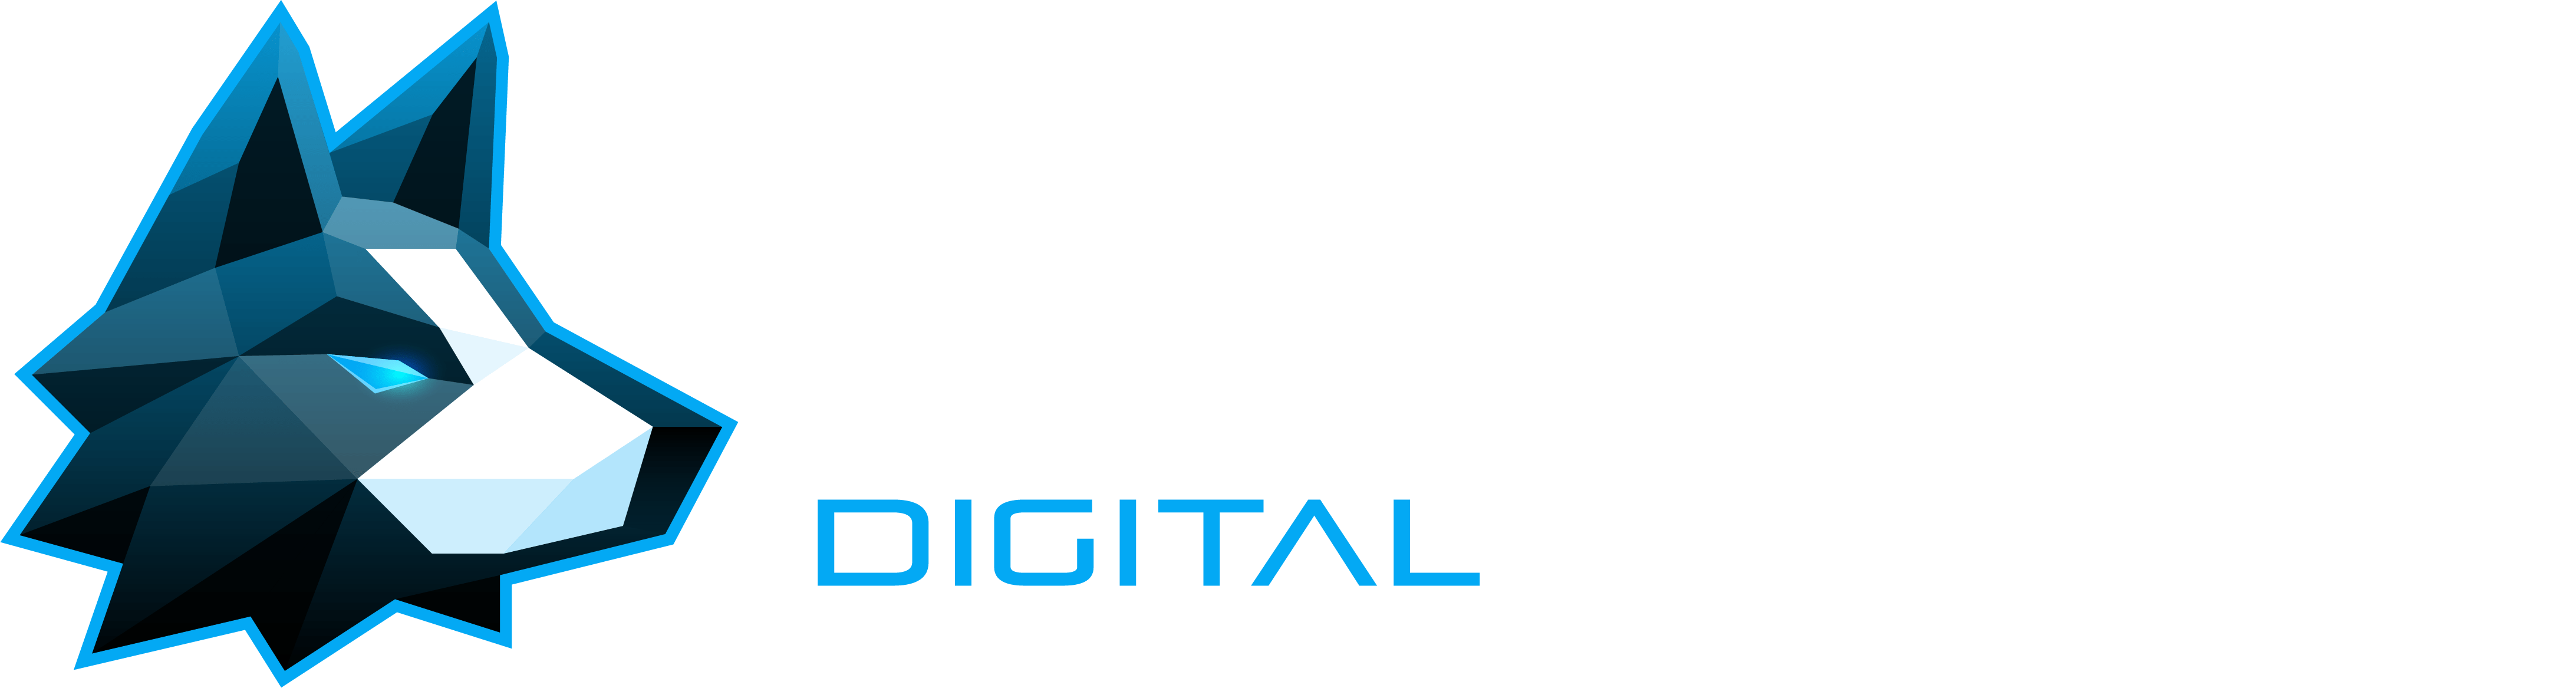 Sheepdog Digital